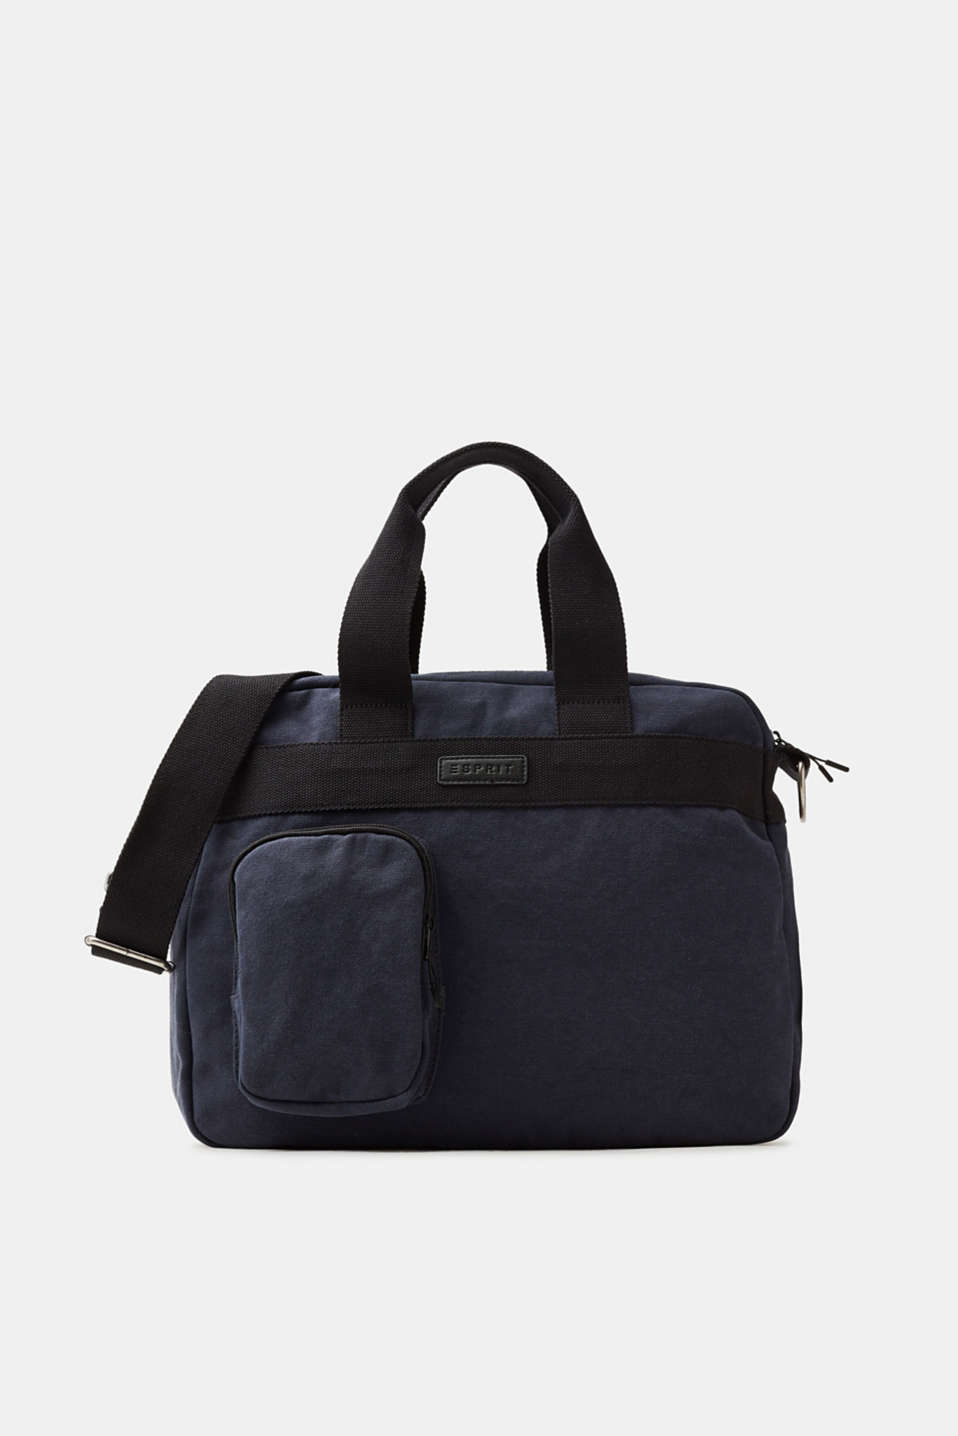 Esprit - Modern business bag with a laptop compartment